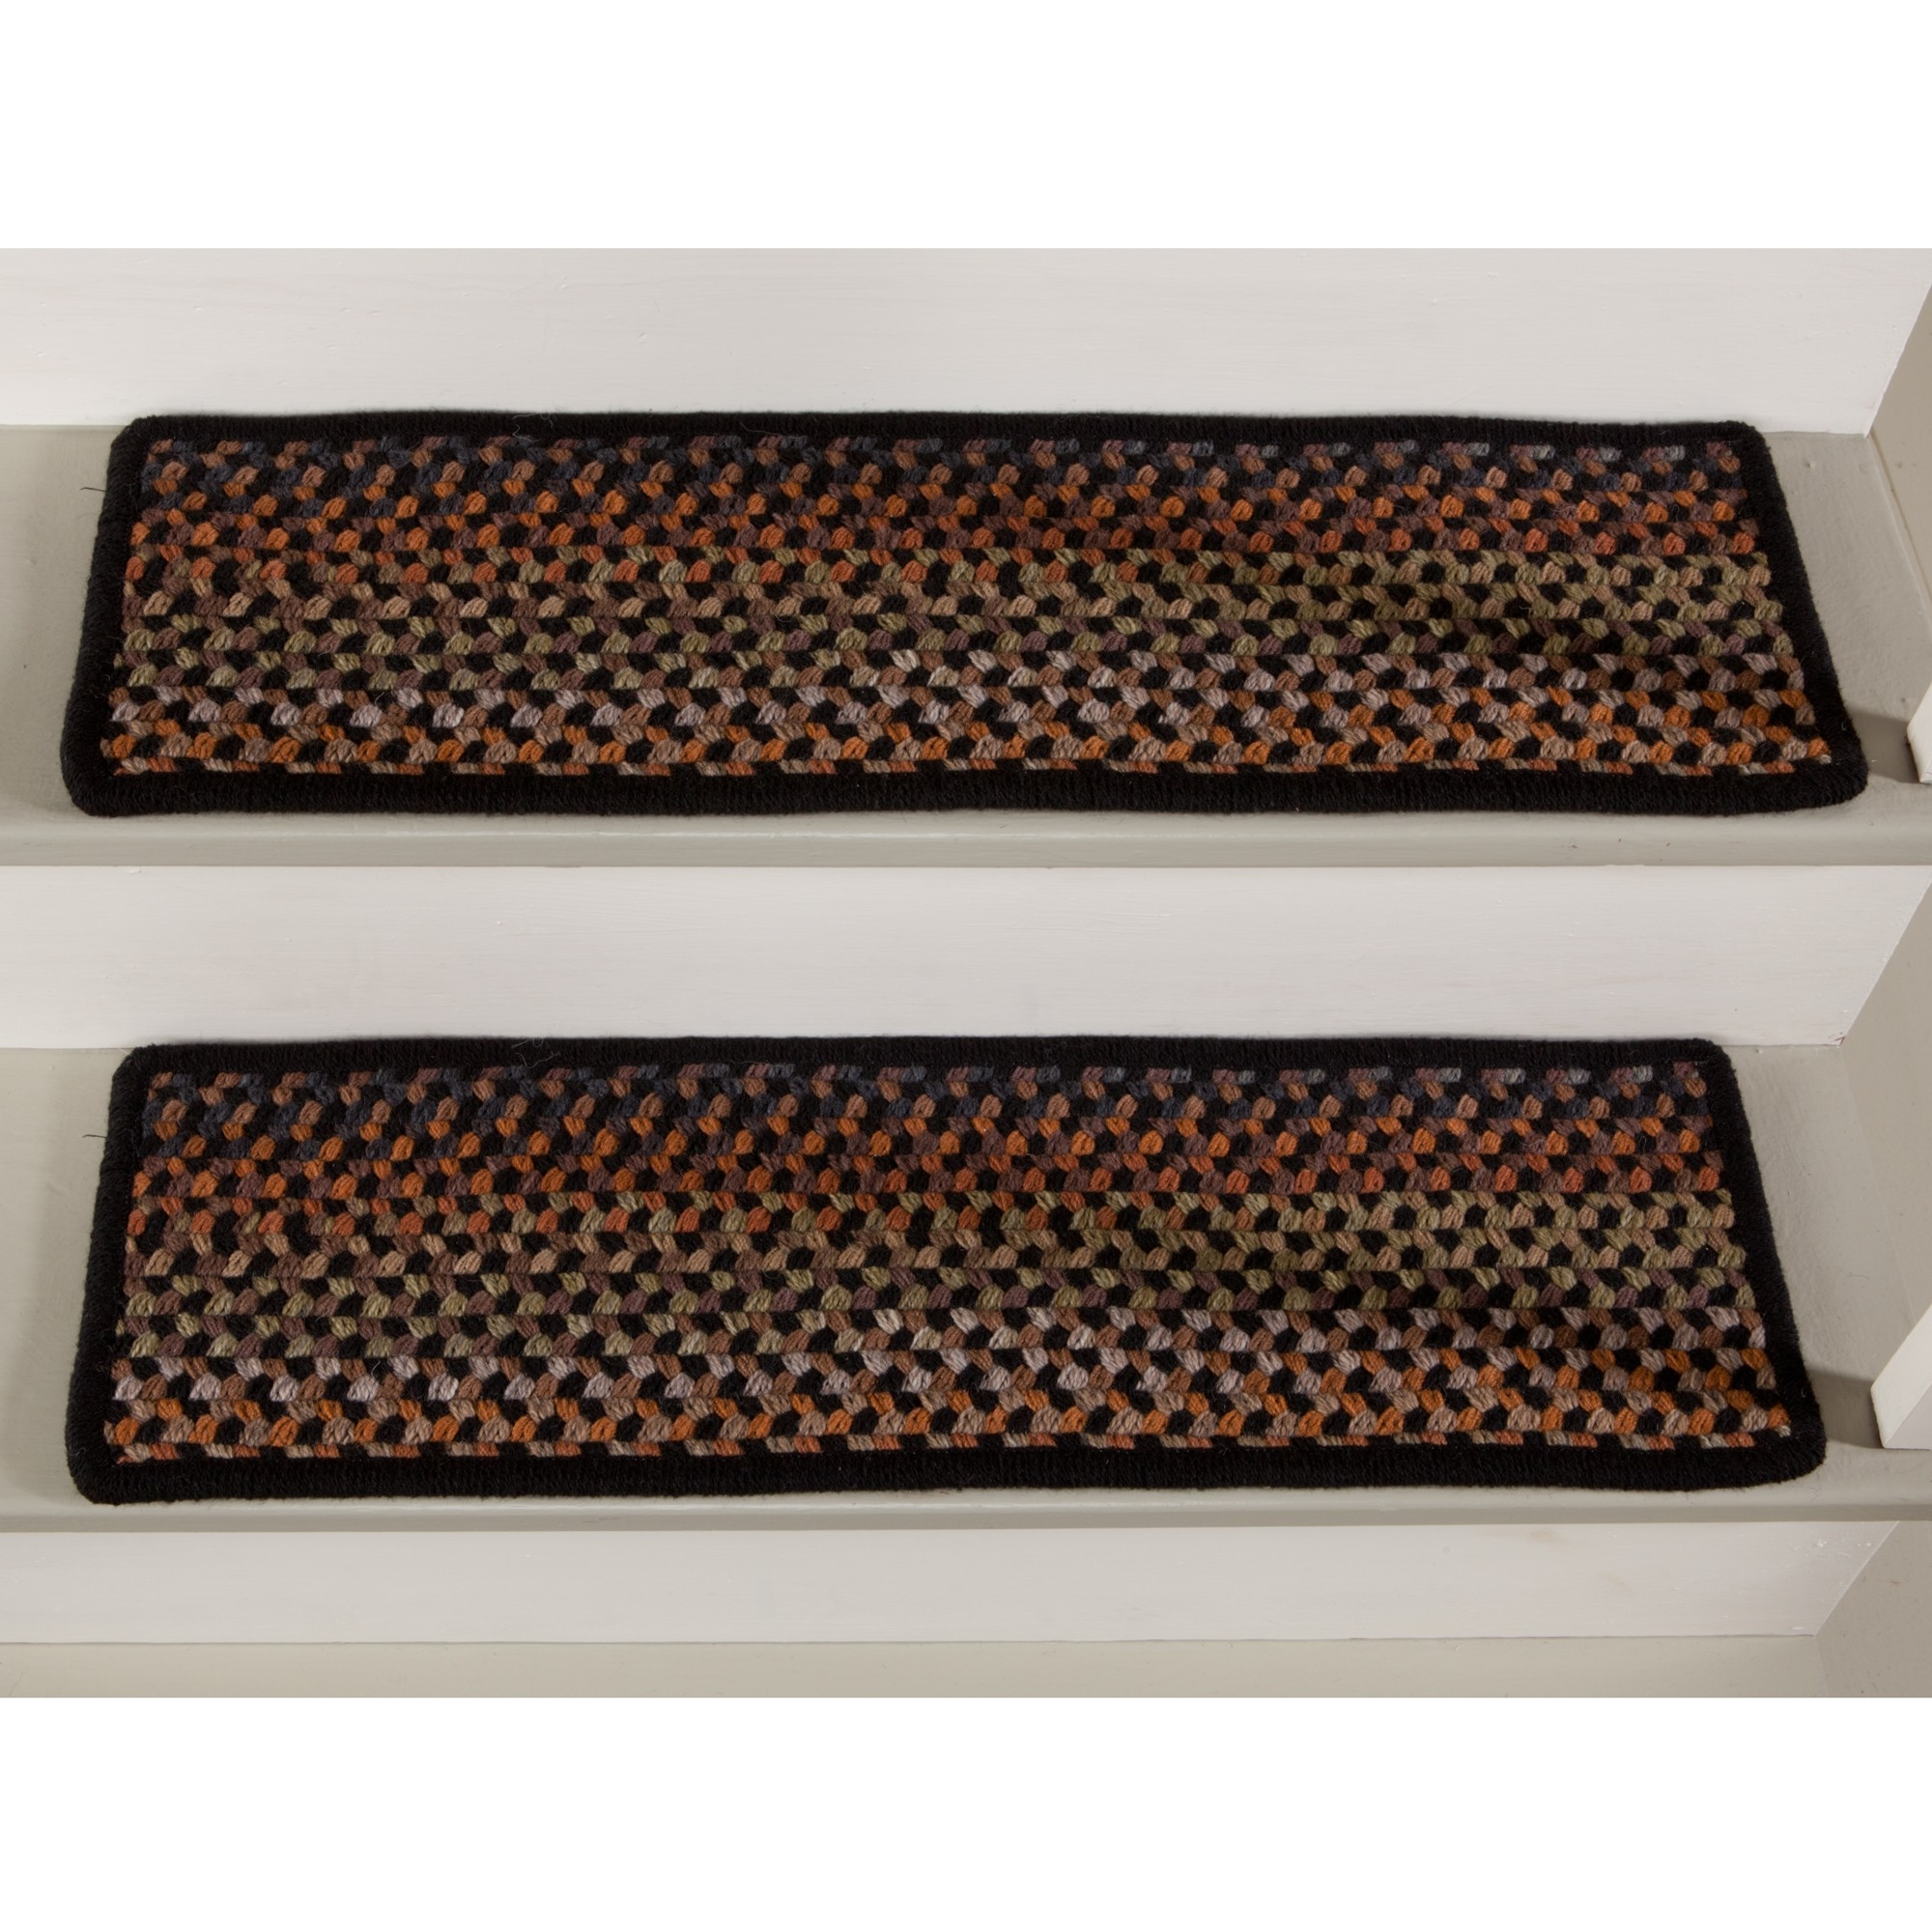 Exterior Interesting Stair Treads For Interior And Exterior Pertaining To Braided Stair Tread Rugs (#9 of 20)